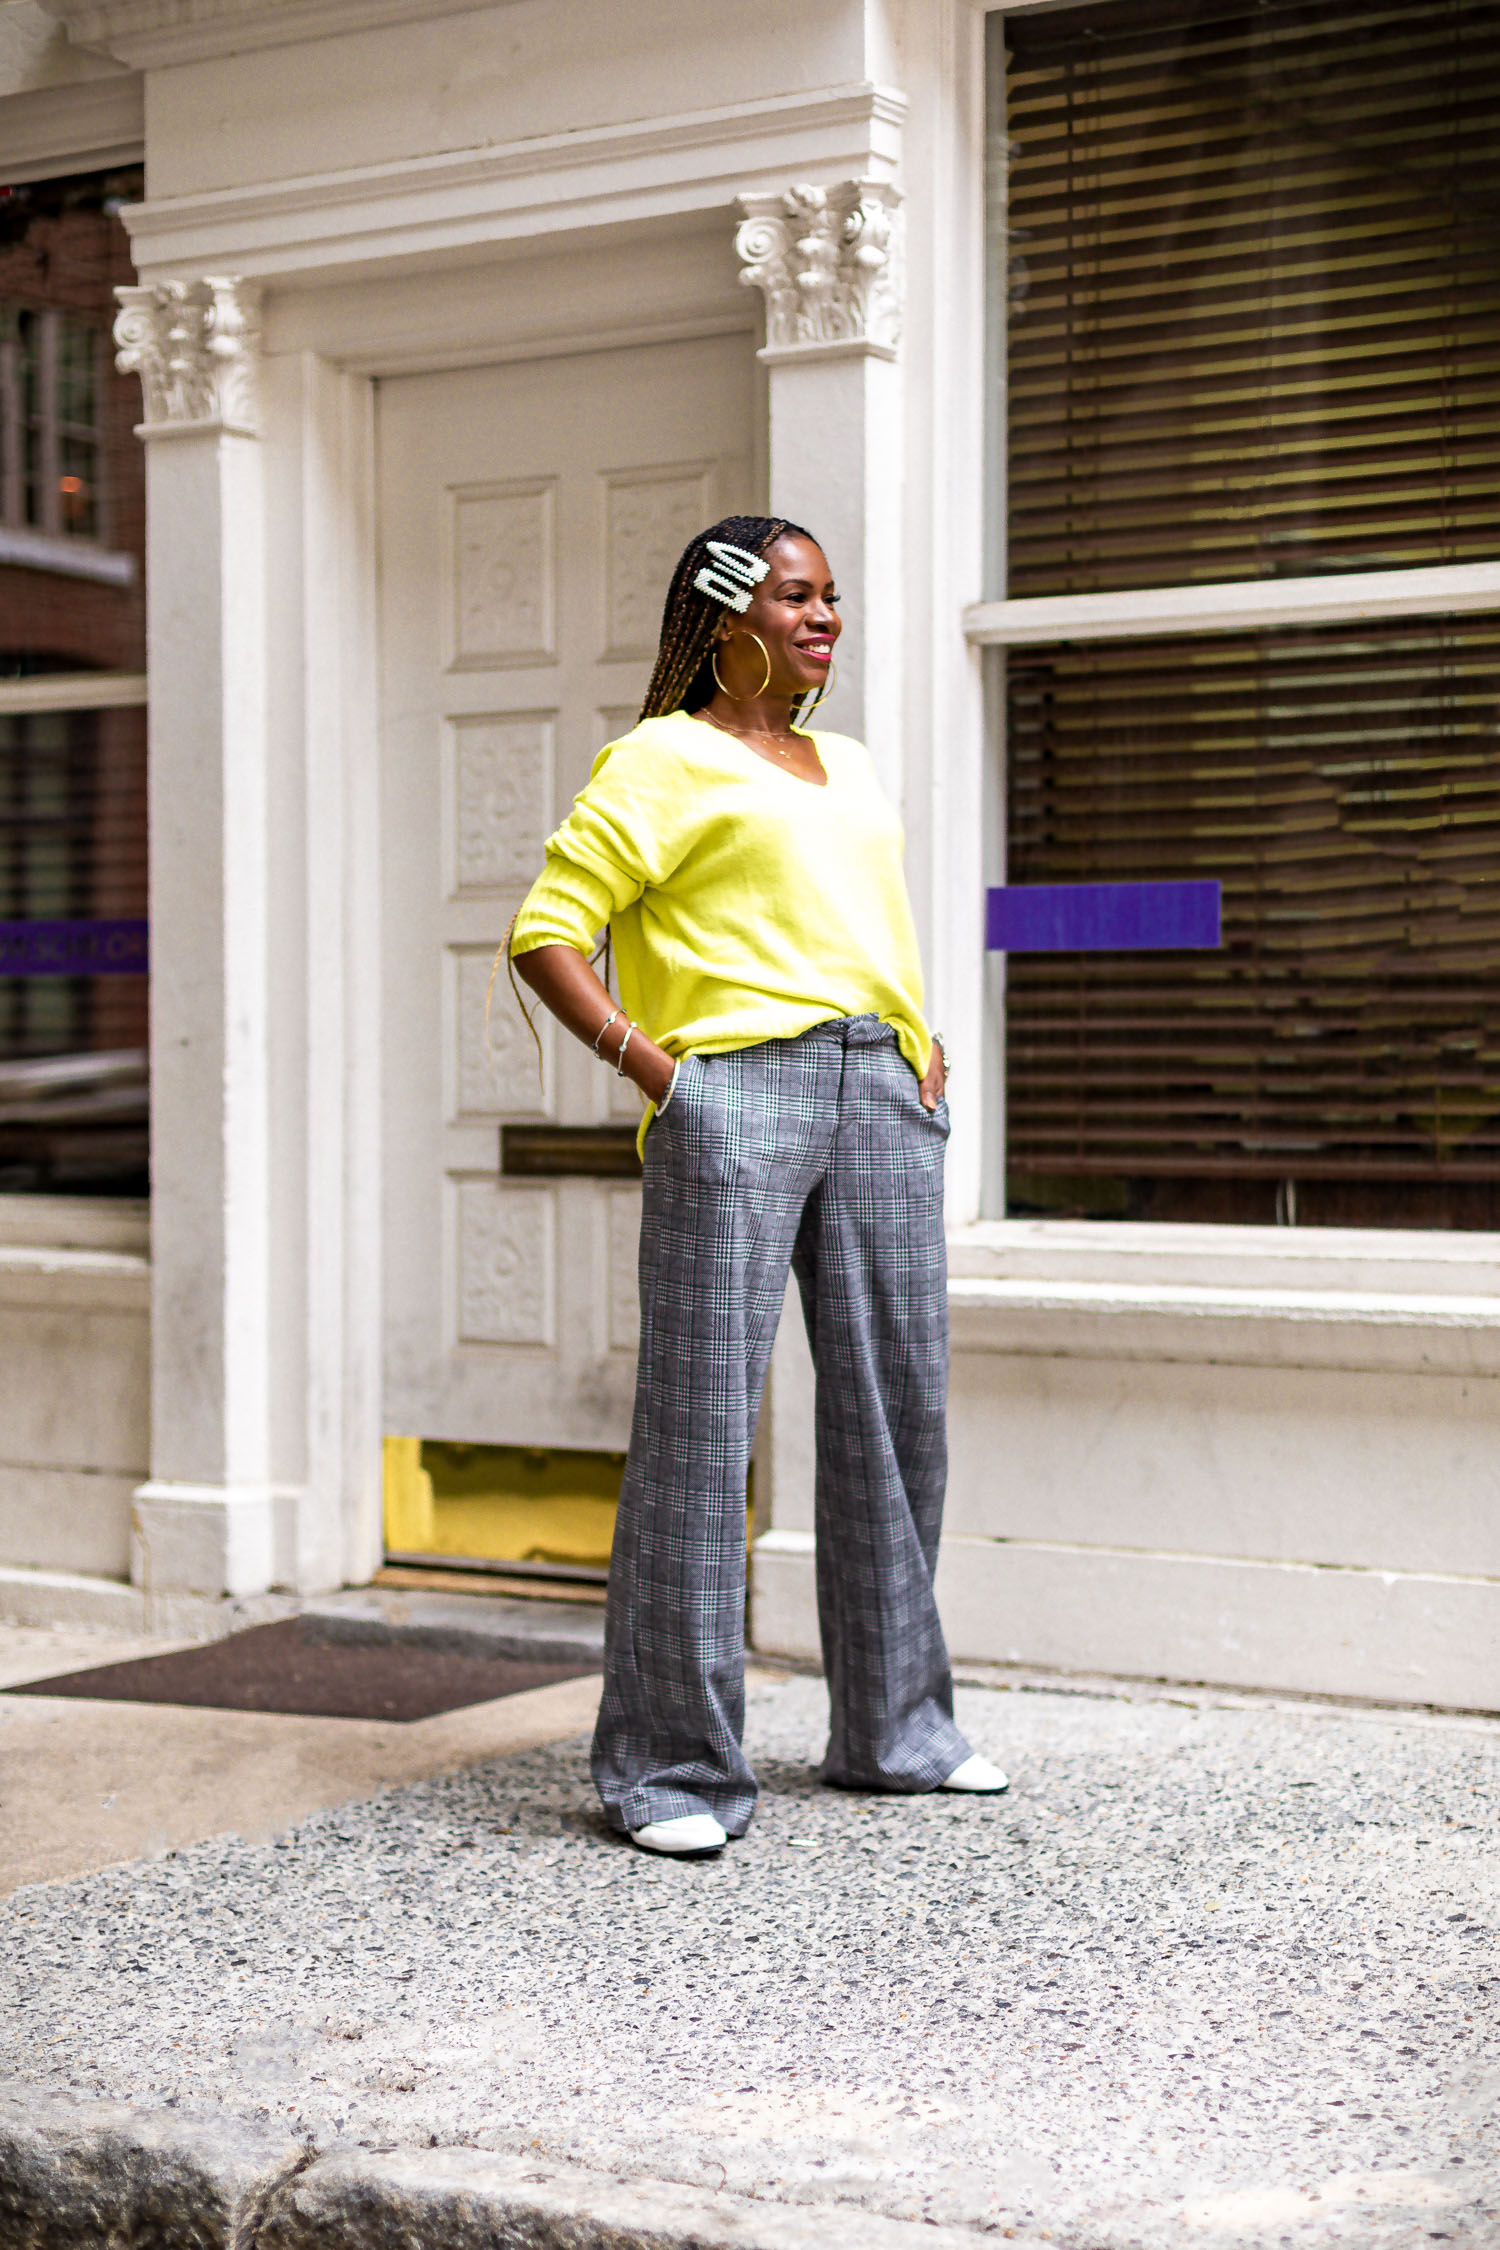 atlanta fashion blogger wearing walmart plaid suit and yellow sweater, how to wear yellow in fall, how to style plaid, how to wear a plaid suit, how to style white shoes in the fall, how to wear pearl hair pins, how to look stylish on a budget, how to look expensive